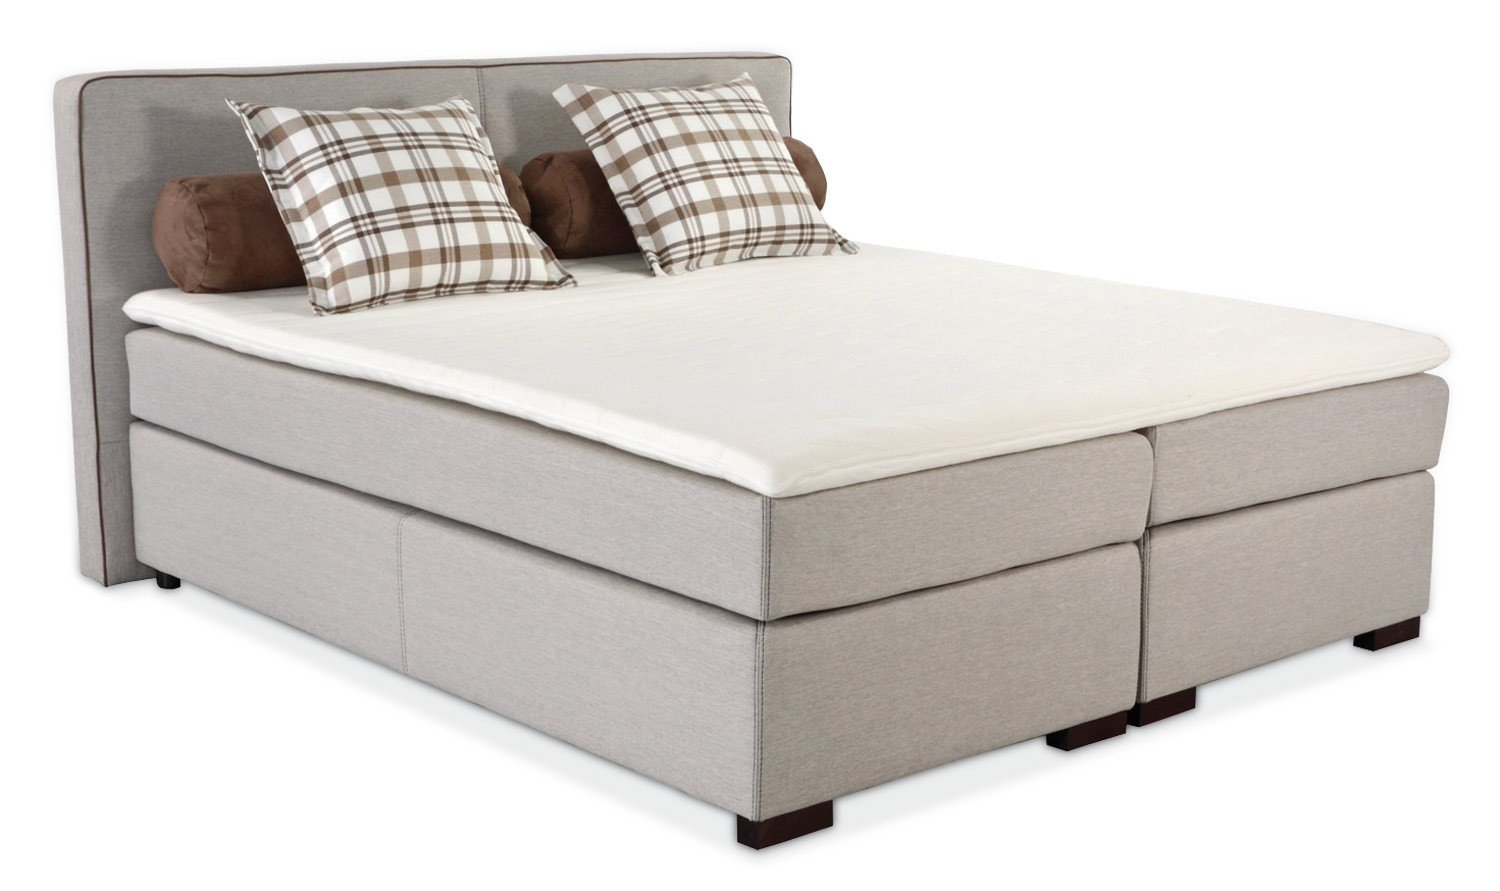 boxspringbett beige 5 sterne schlafkomfort 180x200 robert g nstig kaufen. Black Bedroom Furniture Sets. Home Design Ideas